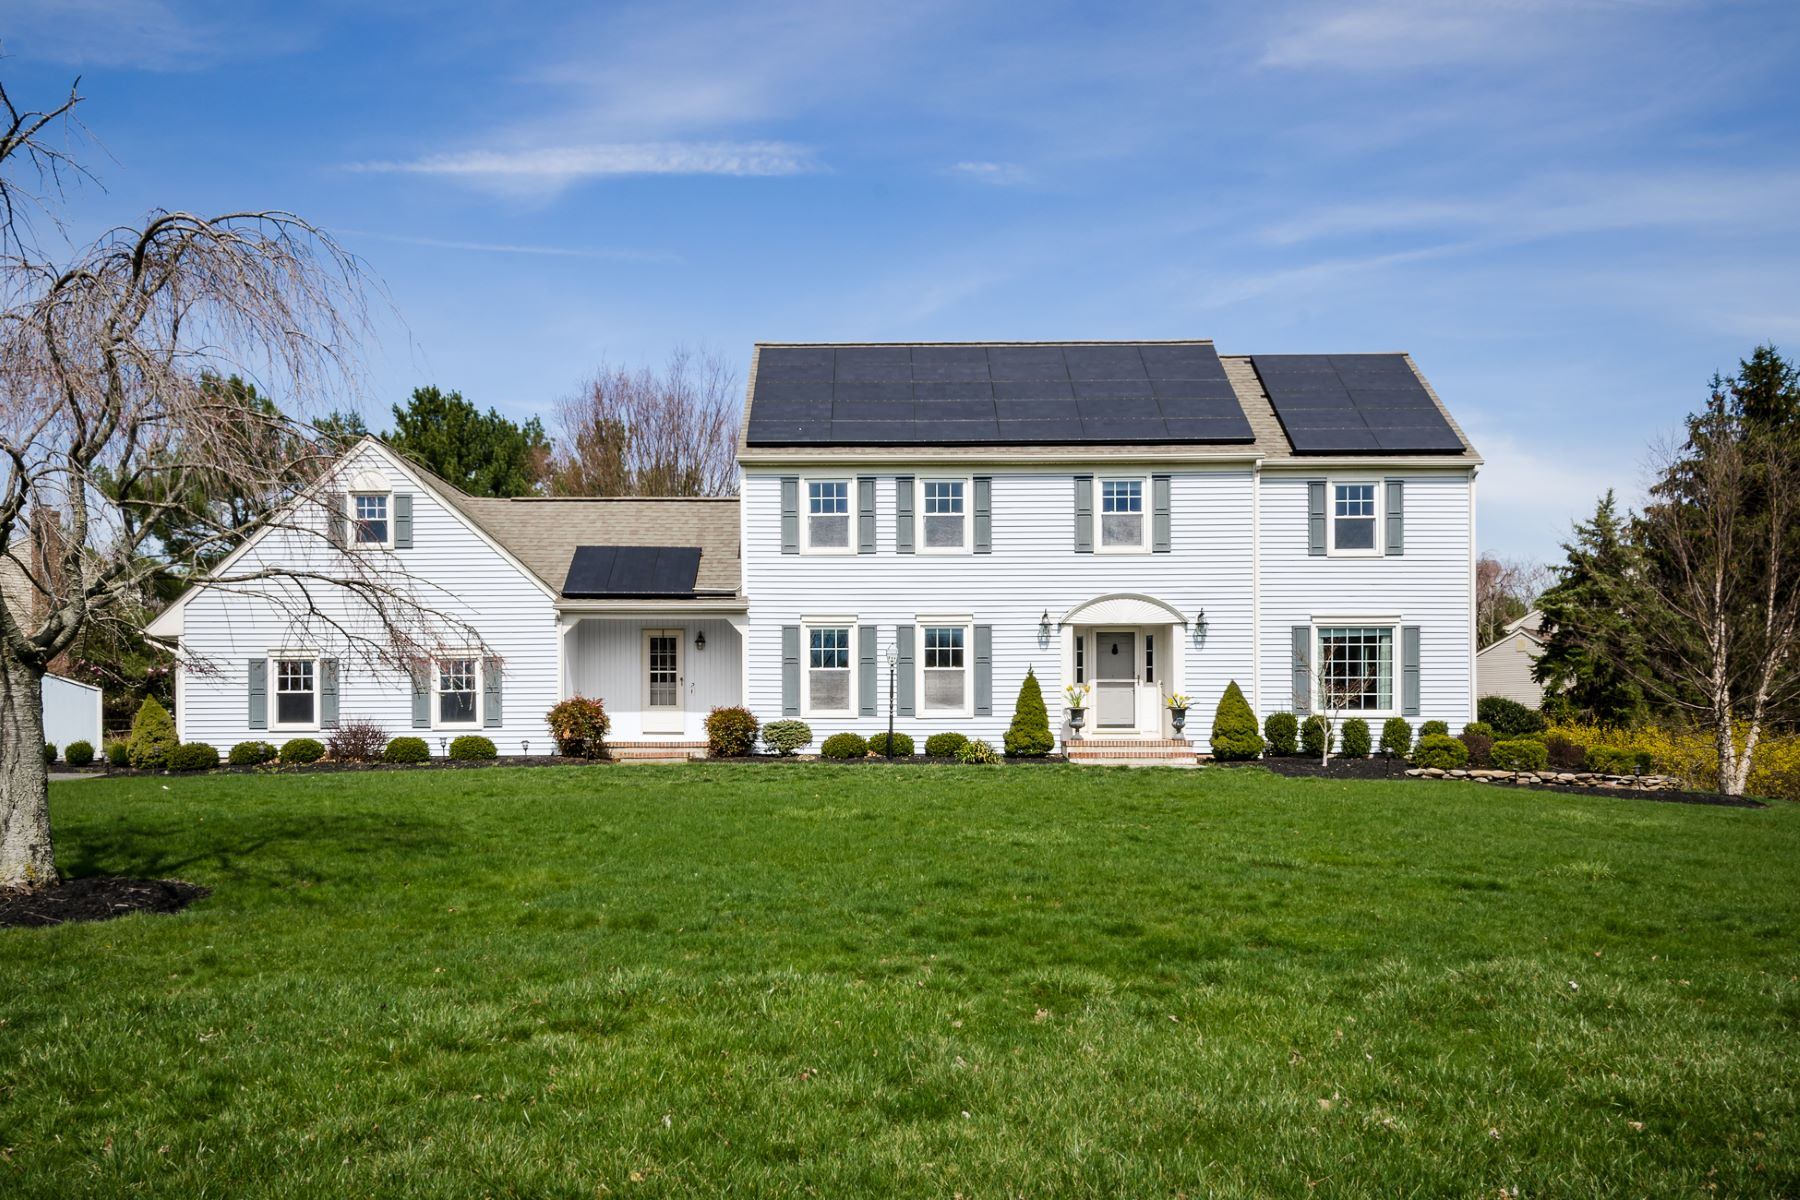 Single Family Home for Sale at Pretty And Picturesque With Many Updates - Montgomery Township 2 Grist Mill Drive Belle Mead, New Jersey, 08502 United States